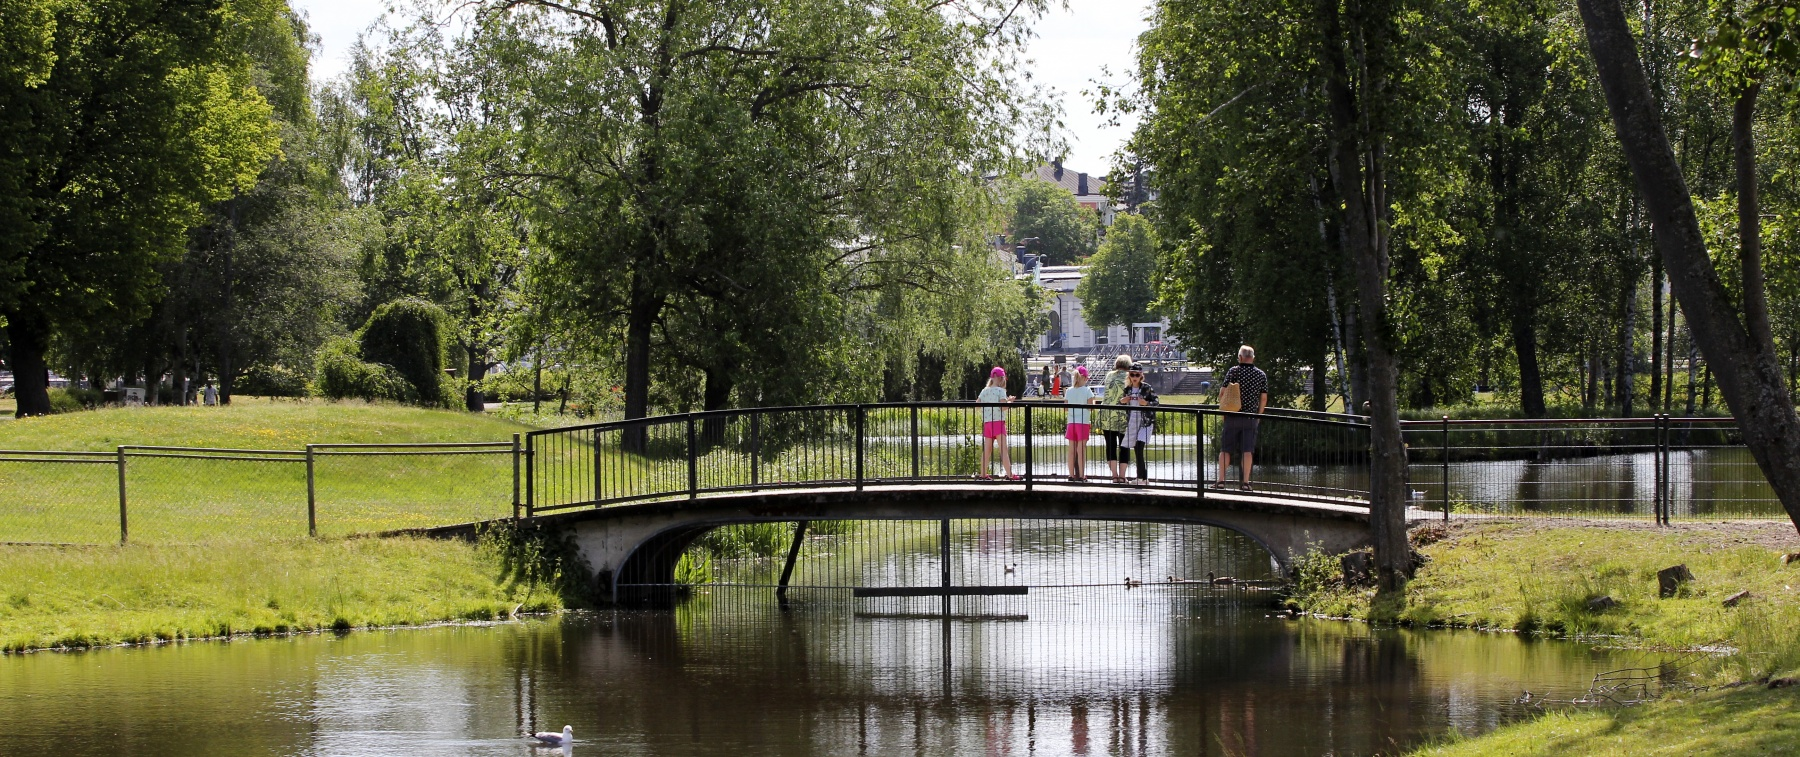 Kirjurinluoto is popular among people of all ages for its outdoor recreation facilities.